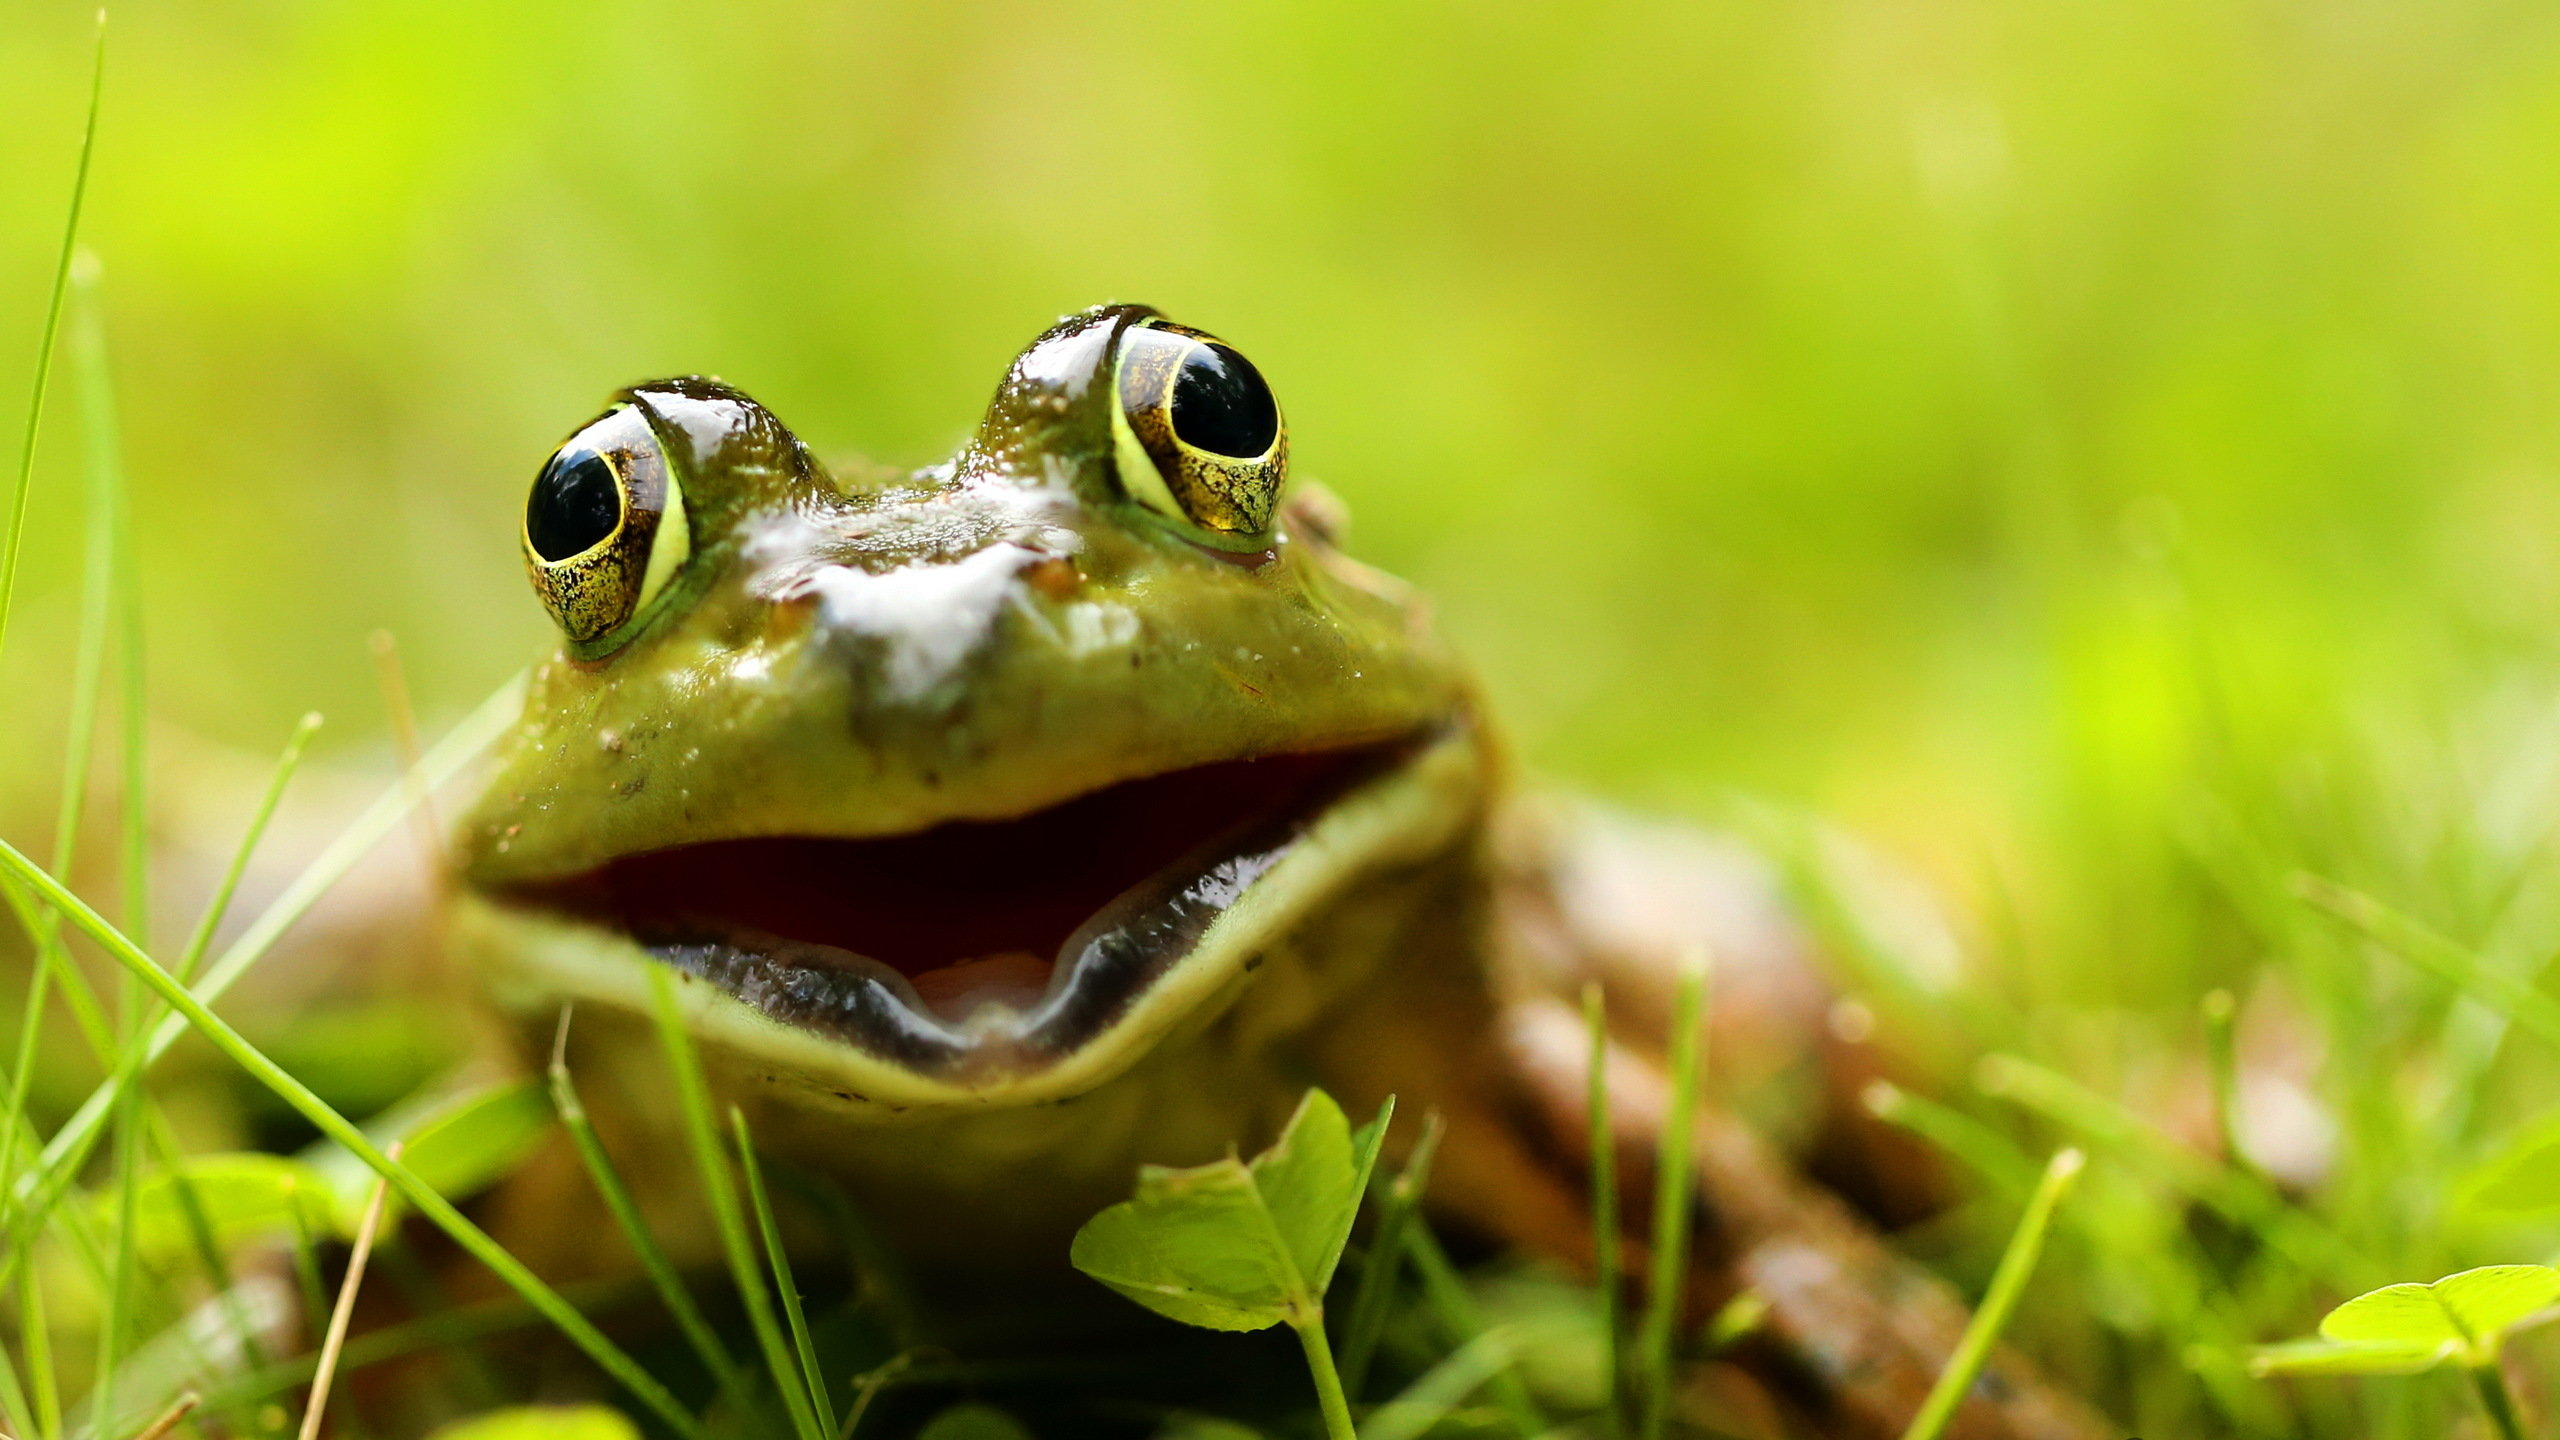 Free Frog high quality wallpaper ID:328842 for hd 2560x1440 computer